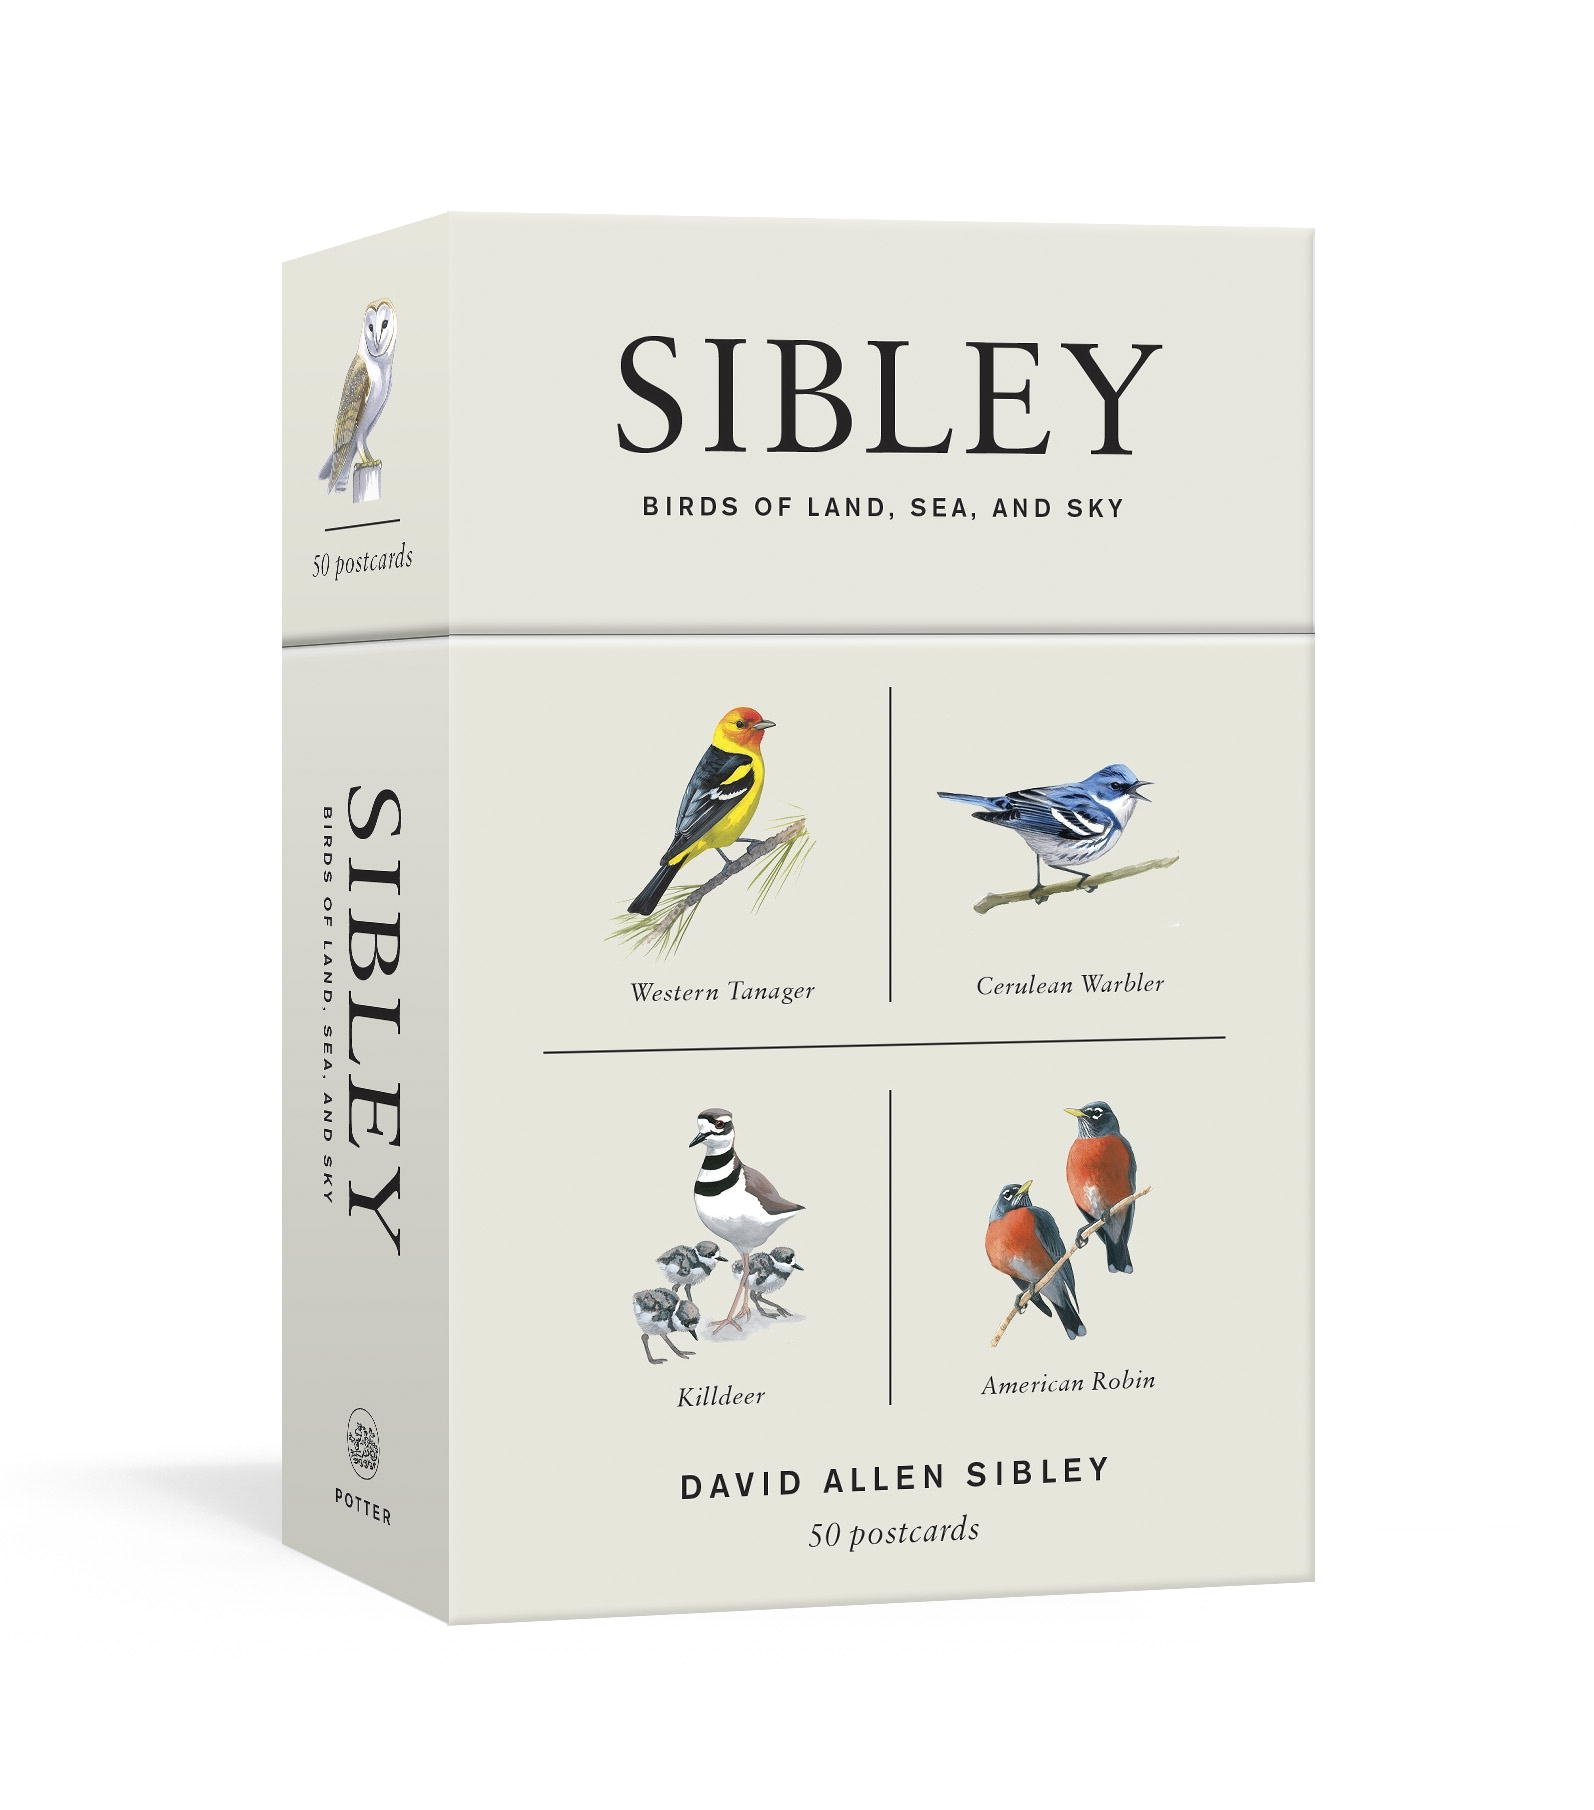 Image result for sibley birds of land, sea, and sky